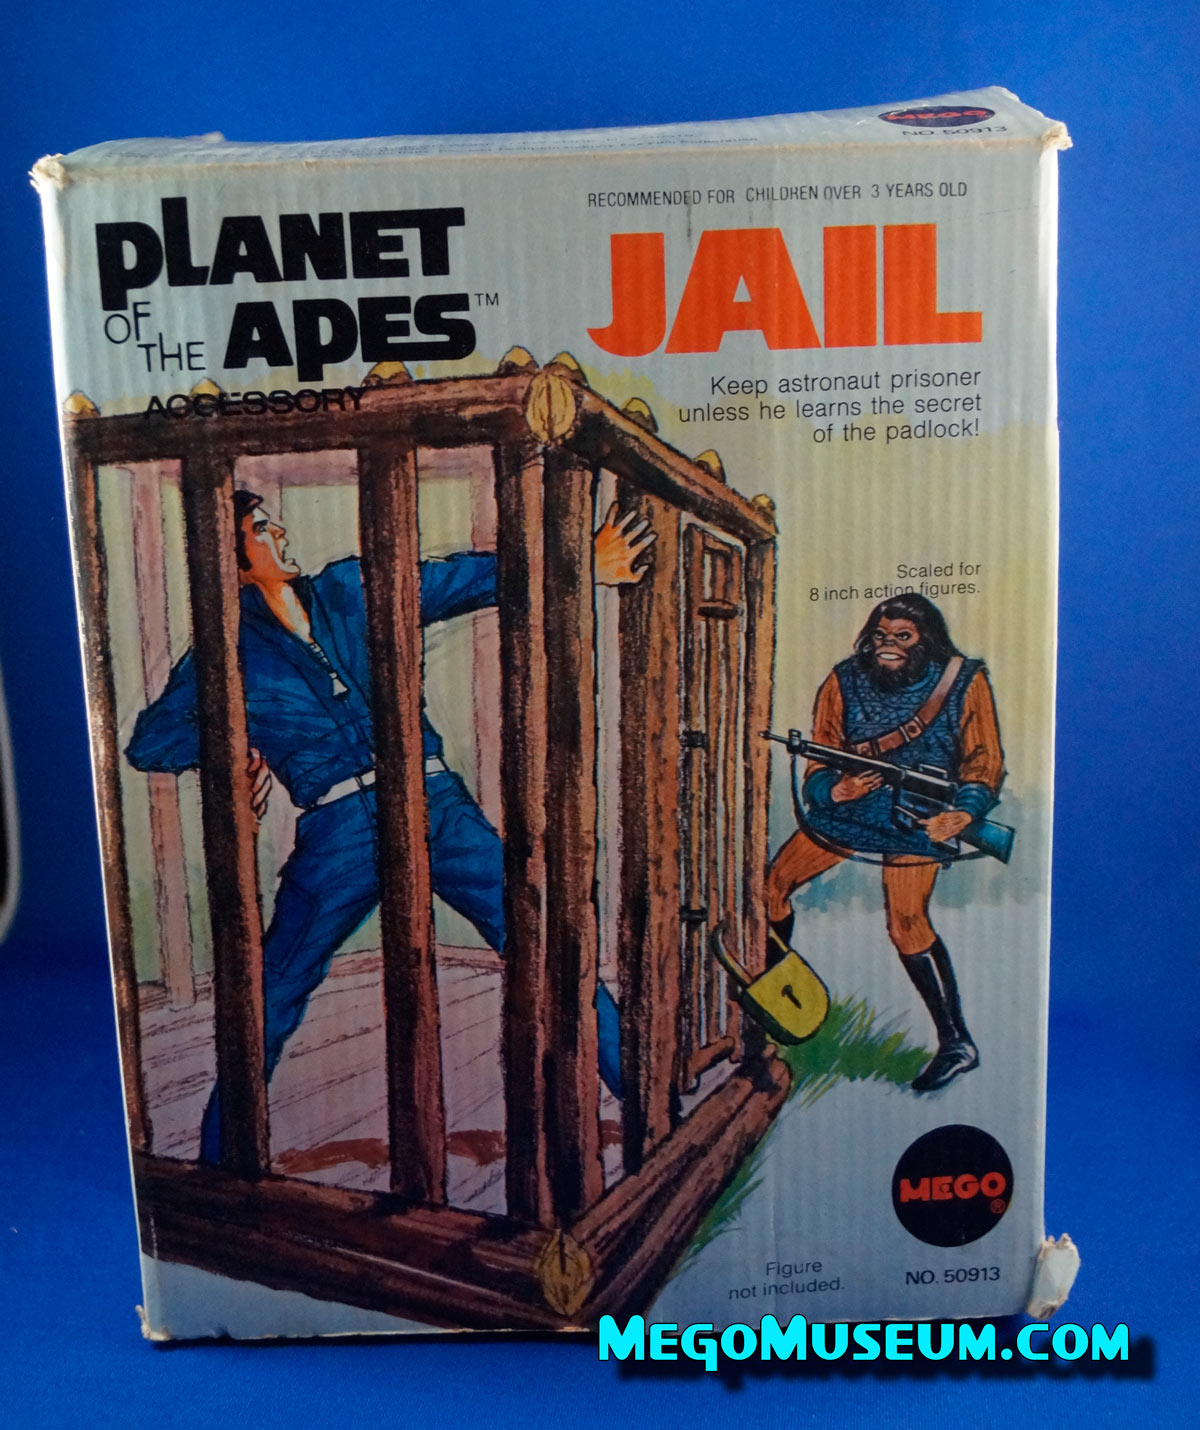 Mego Planet of the Apes Jail